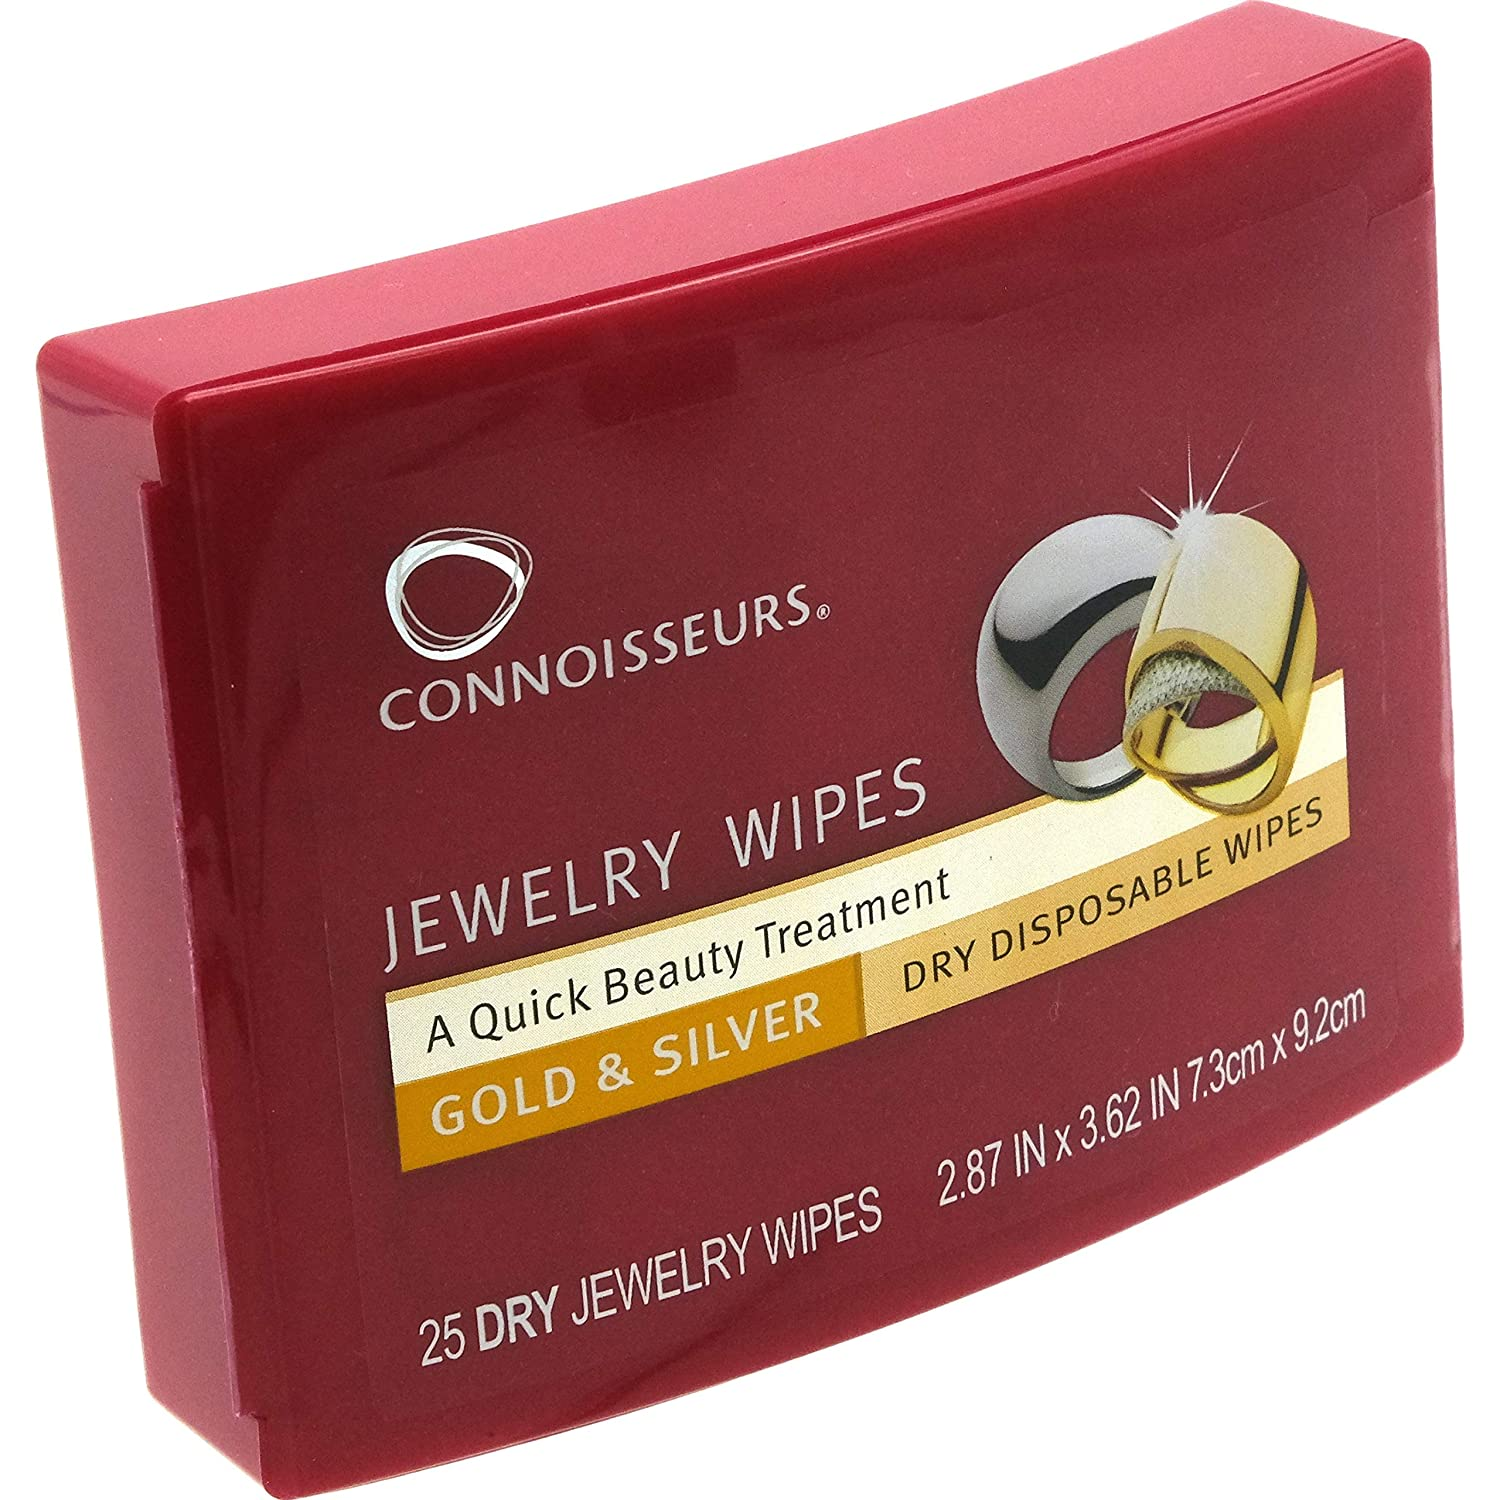 Connoisseurs Jewellery Wipes 25s RK-6J8R-ZLRO